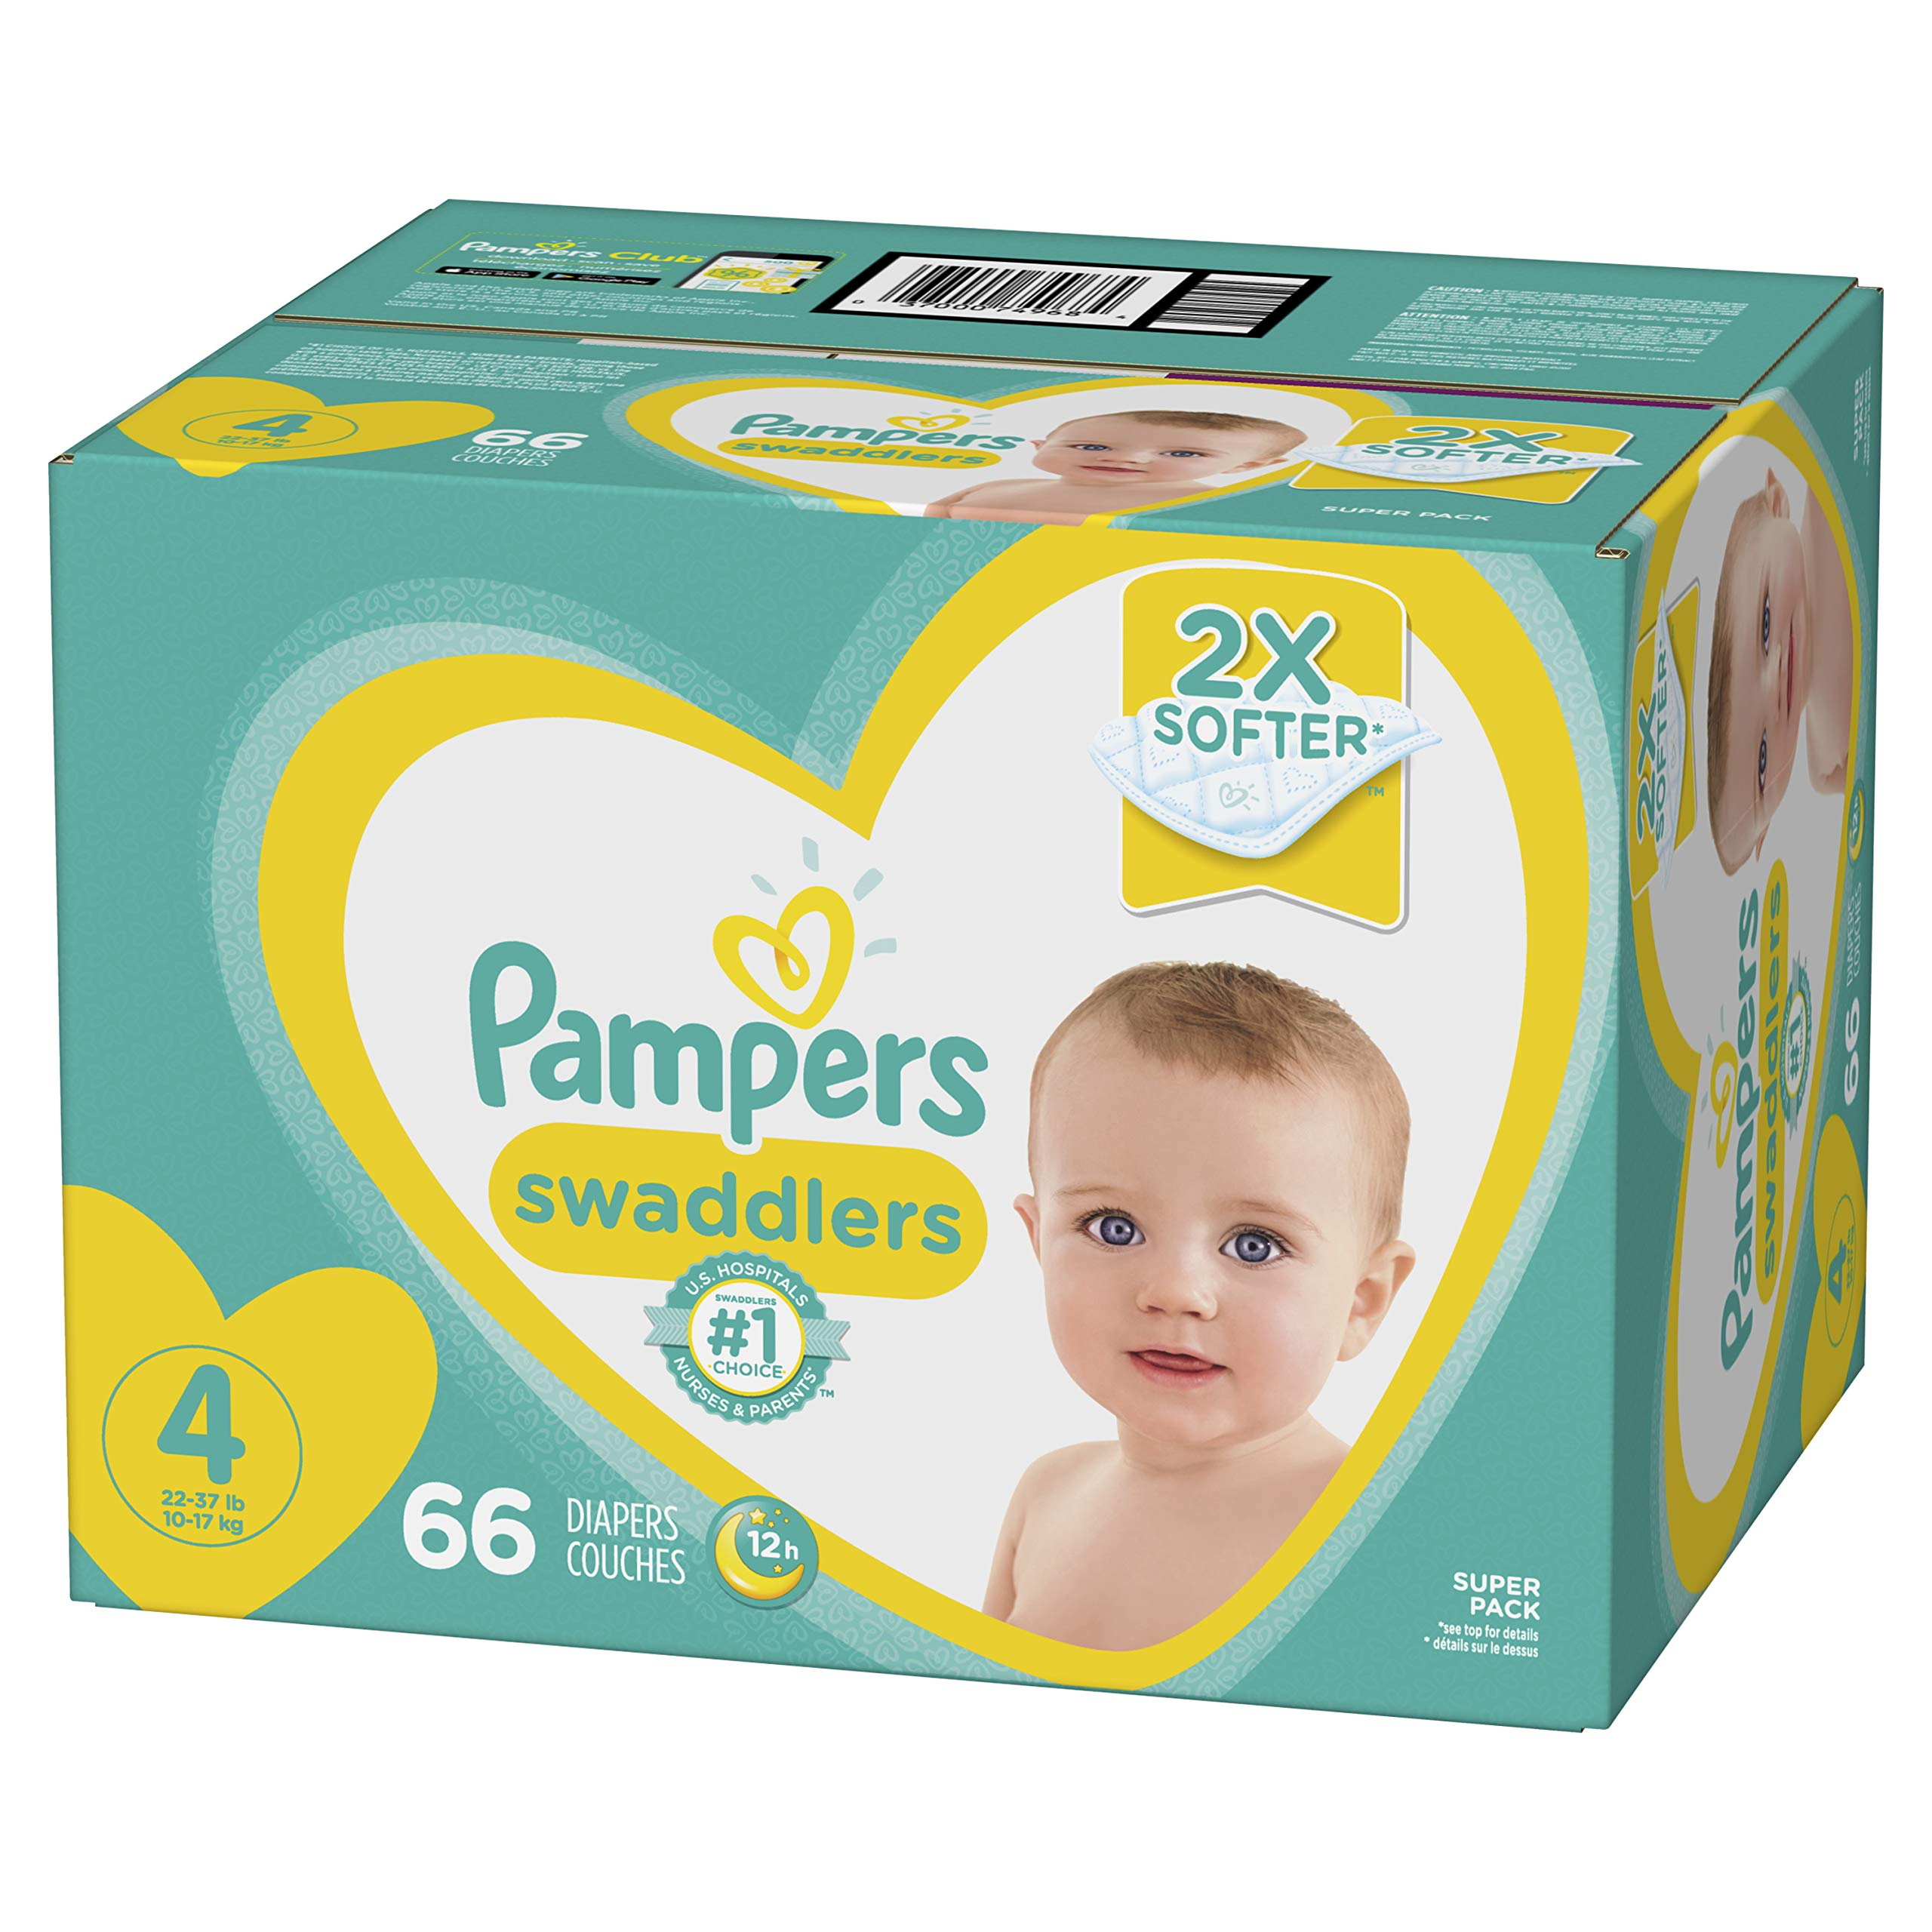 Diapers Size 4, 66 Count - Pampers Swaddlers Disposable Baby Diapers, Super Pack by Pampers